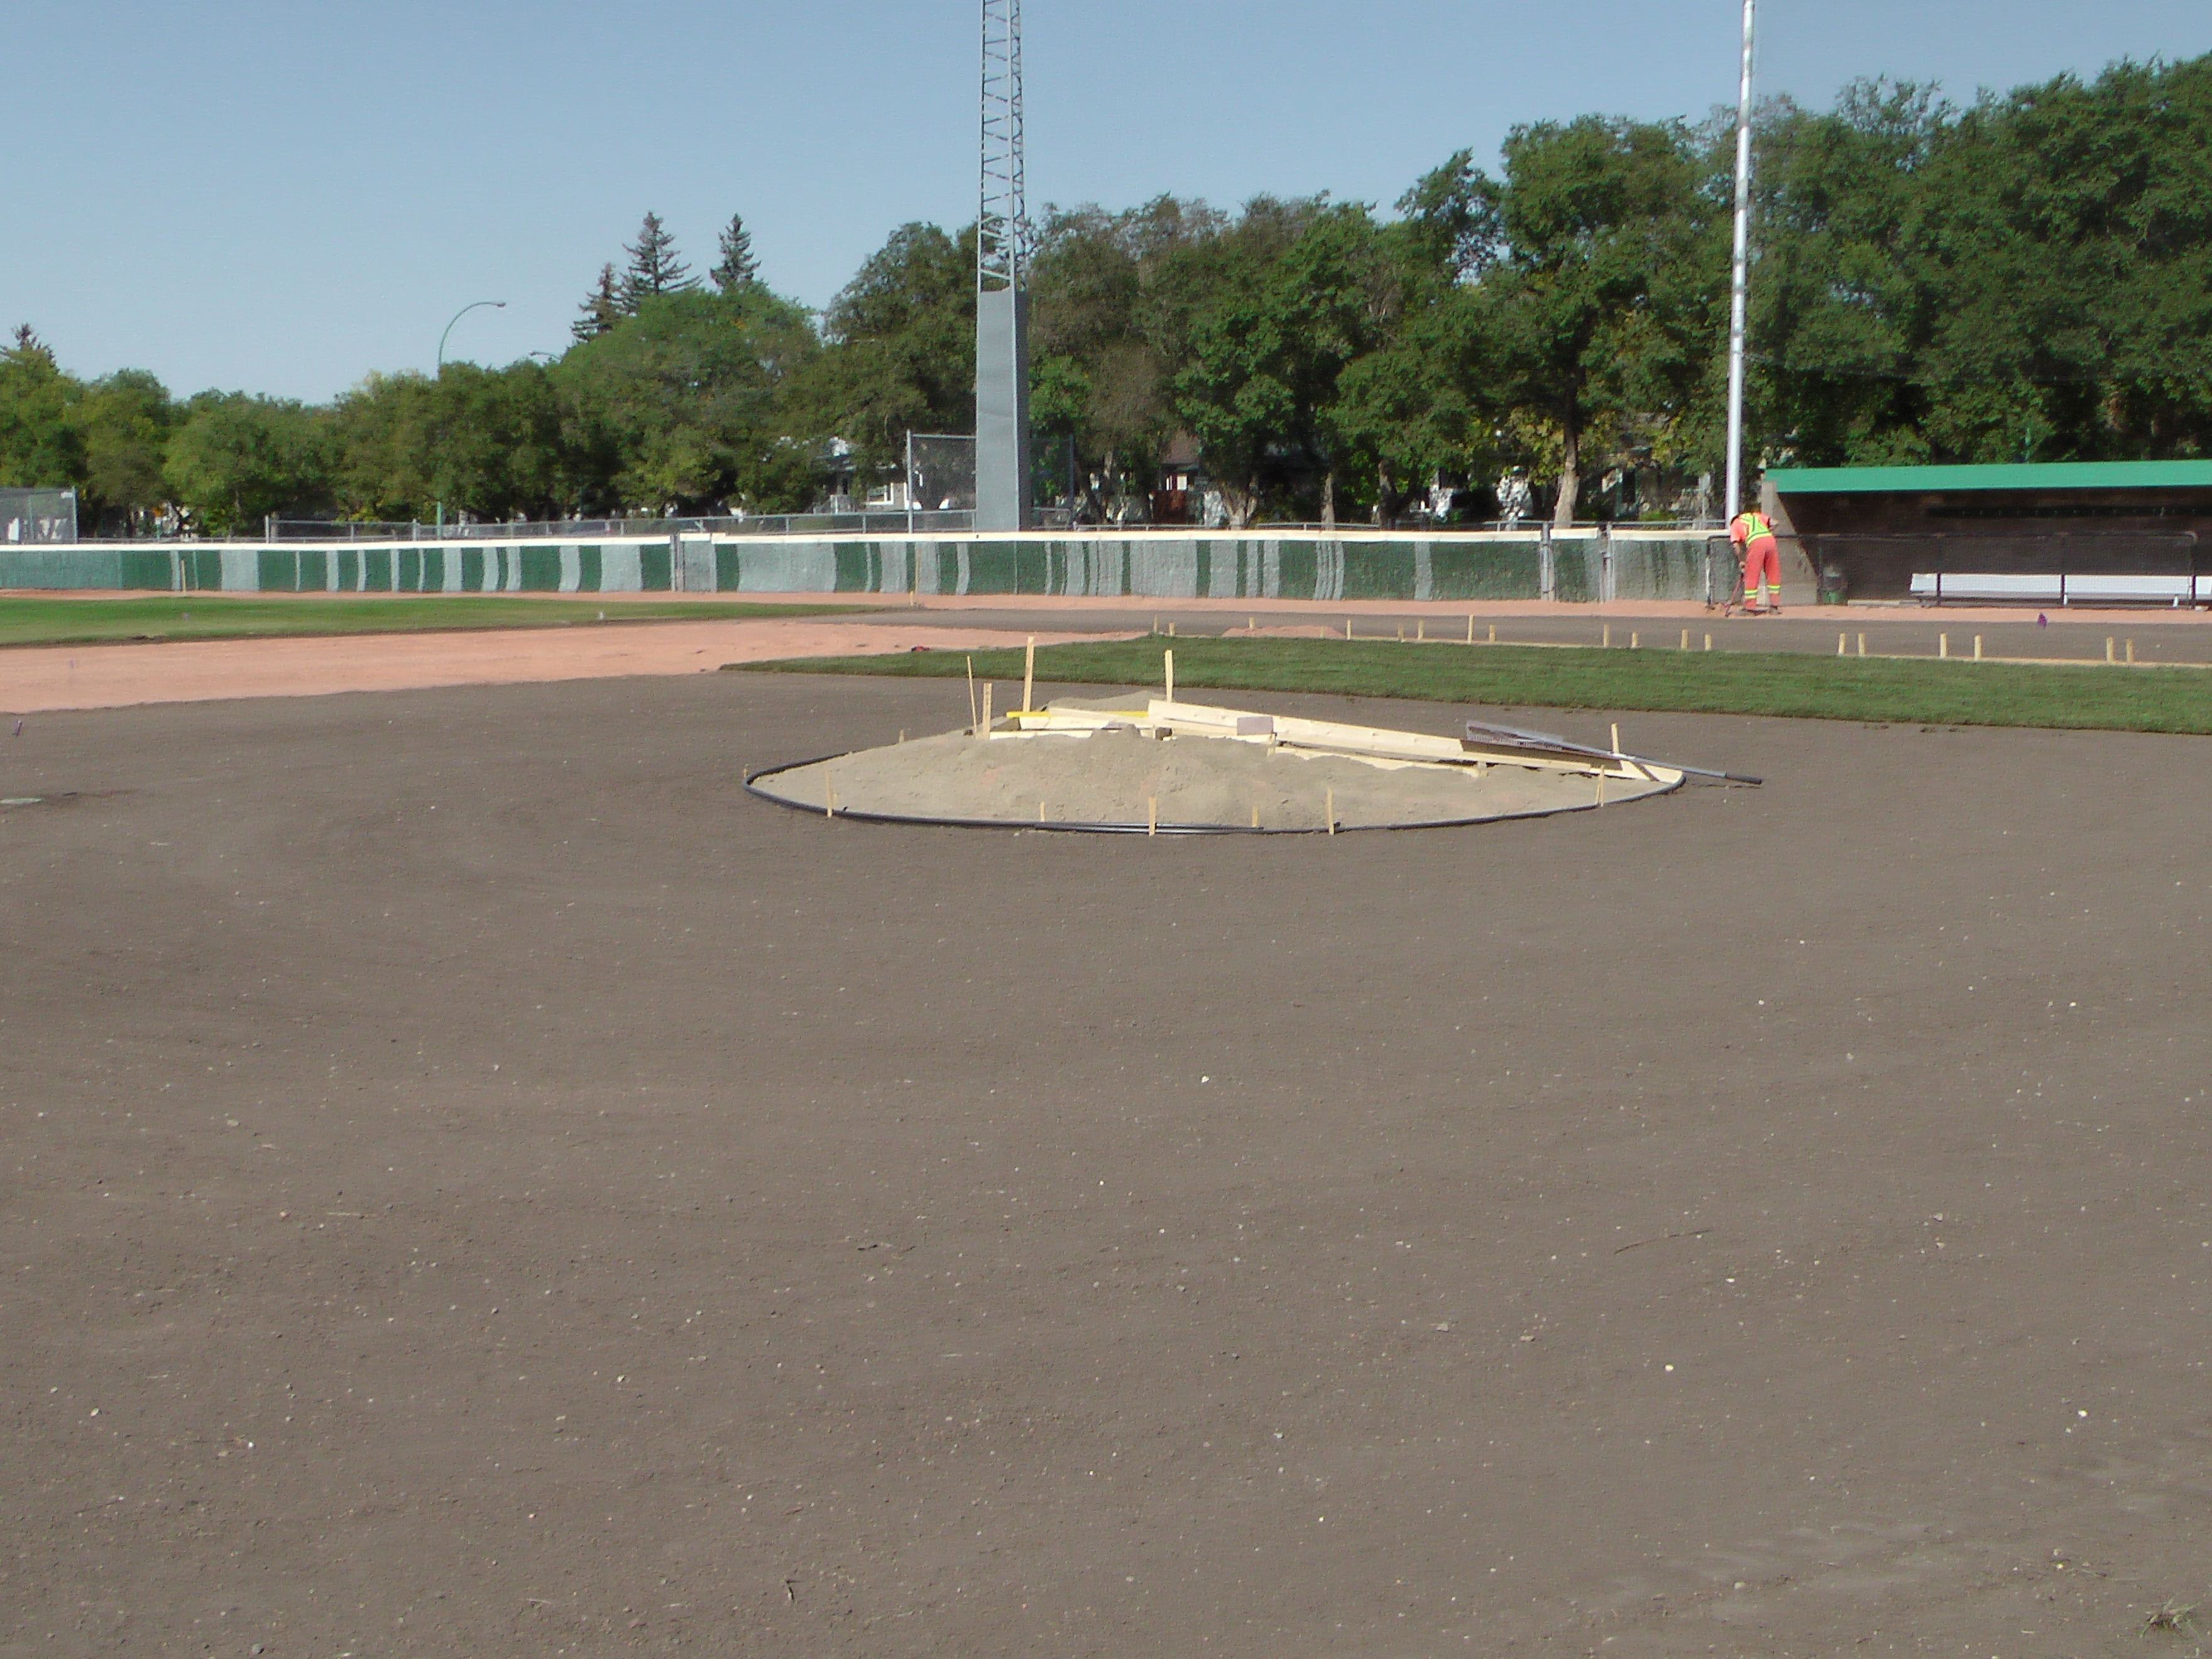 Sept 5 2018 Optimist Park Field Renovations, Placing New Sod/Leveling! - Image 8